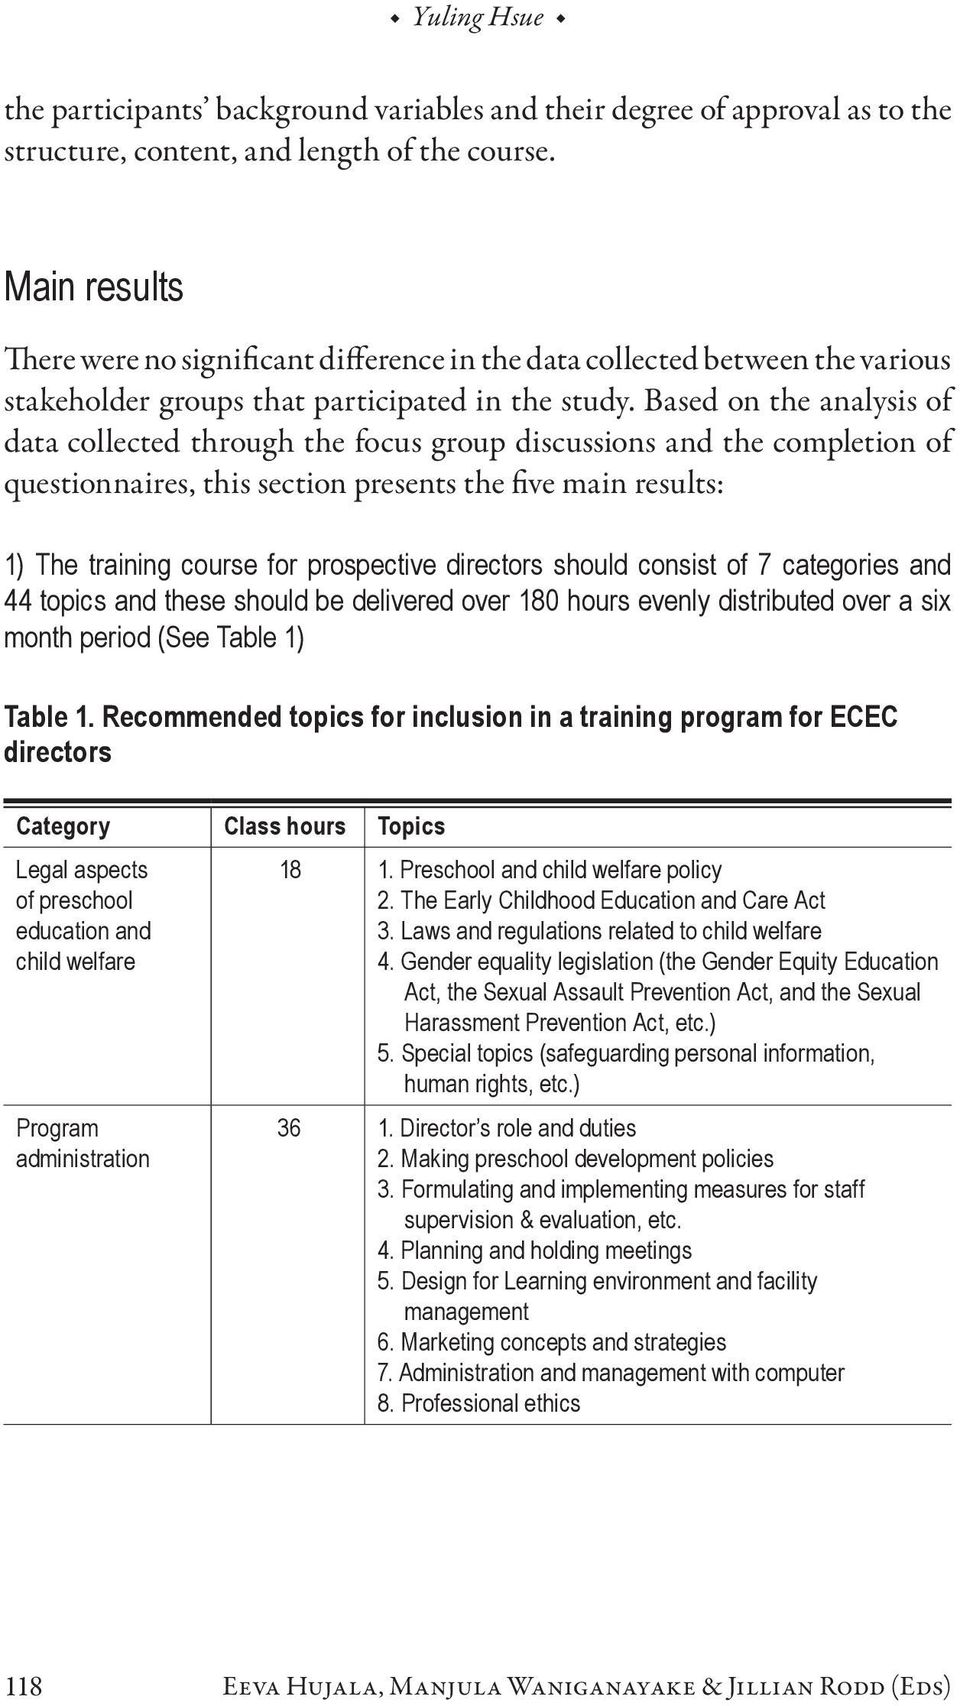 Based on the analysis of data collected through the focus group discussions and the completion of questionnaires, this section presents the five main results: 1) The training course for prospective